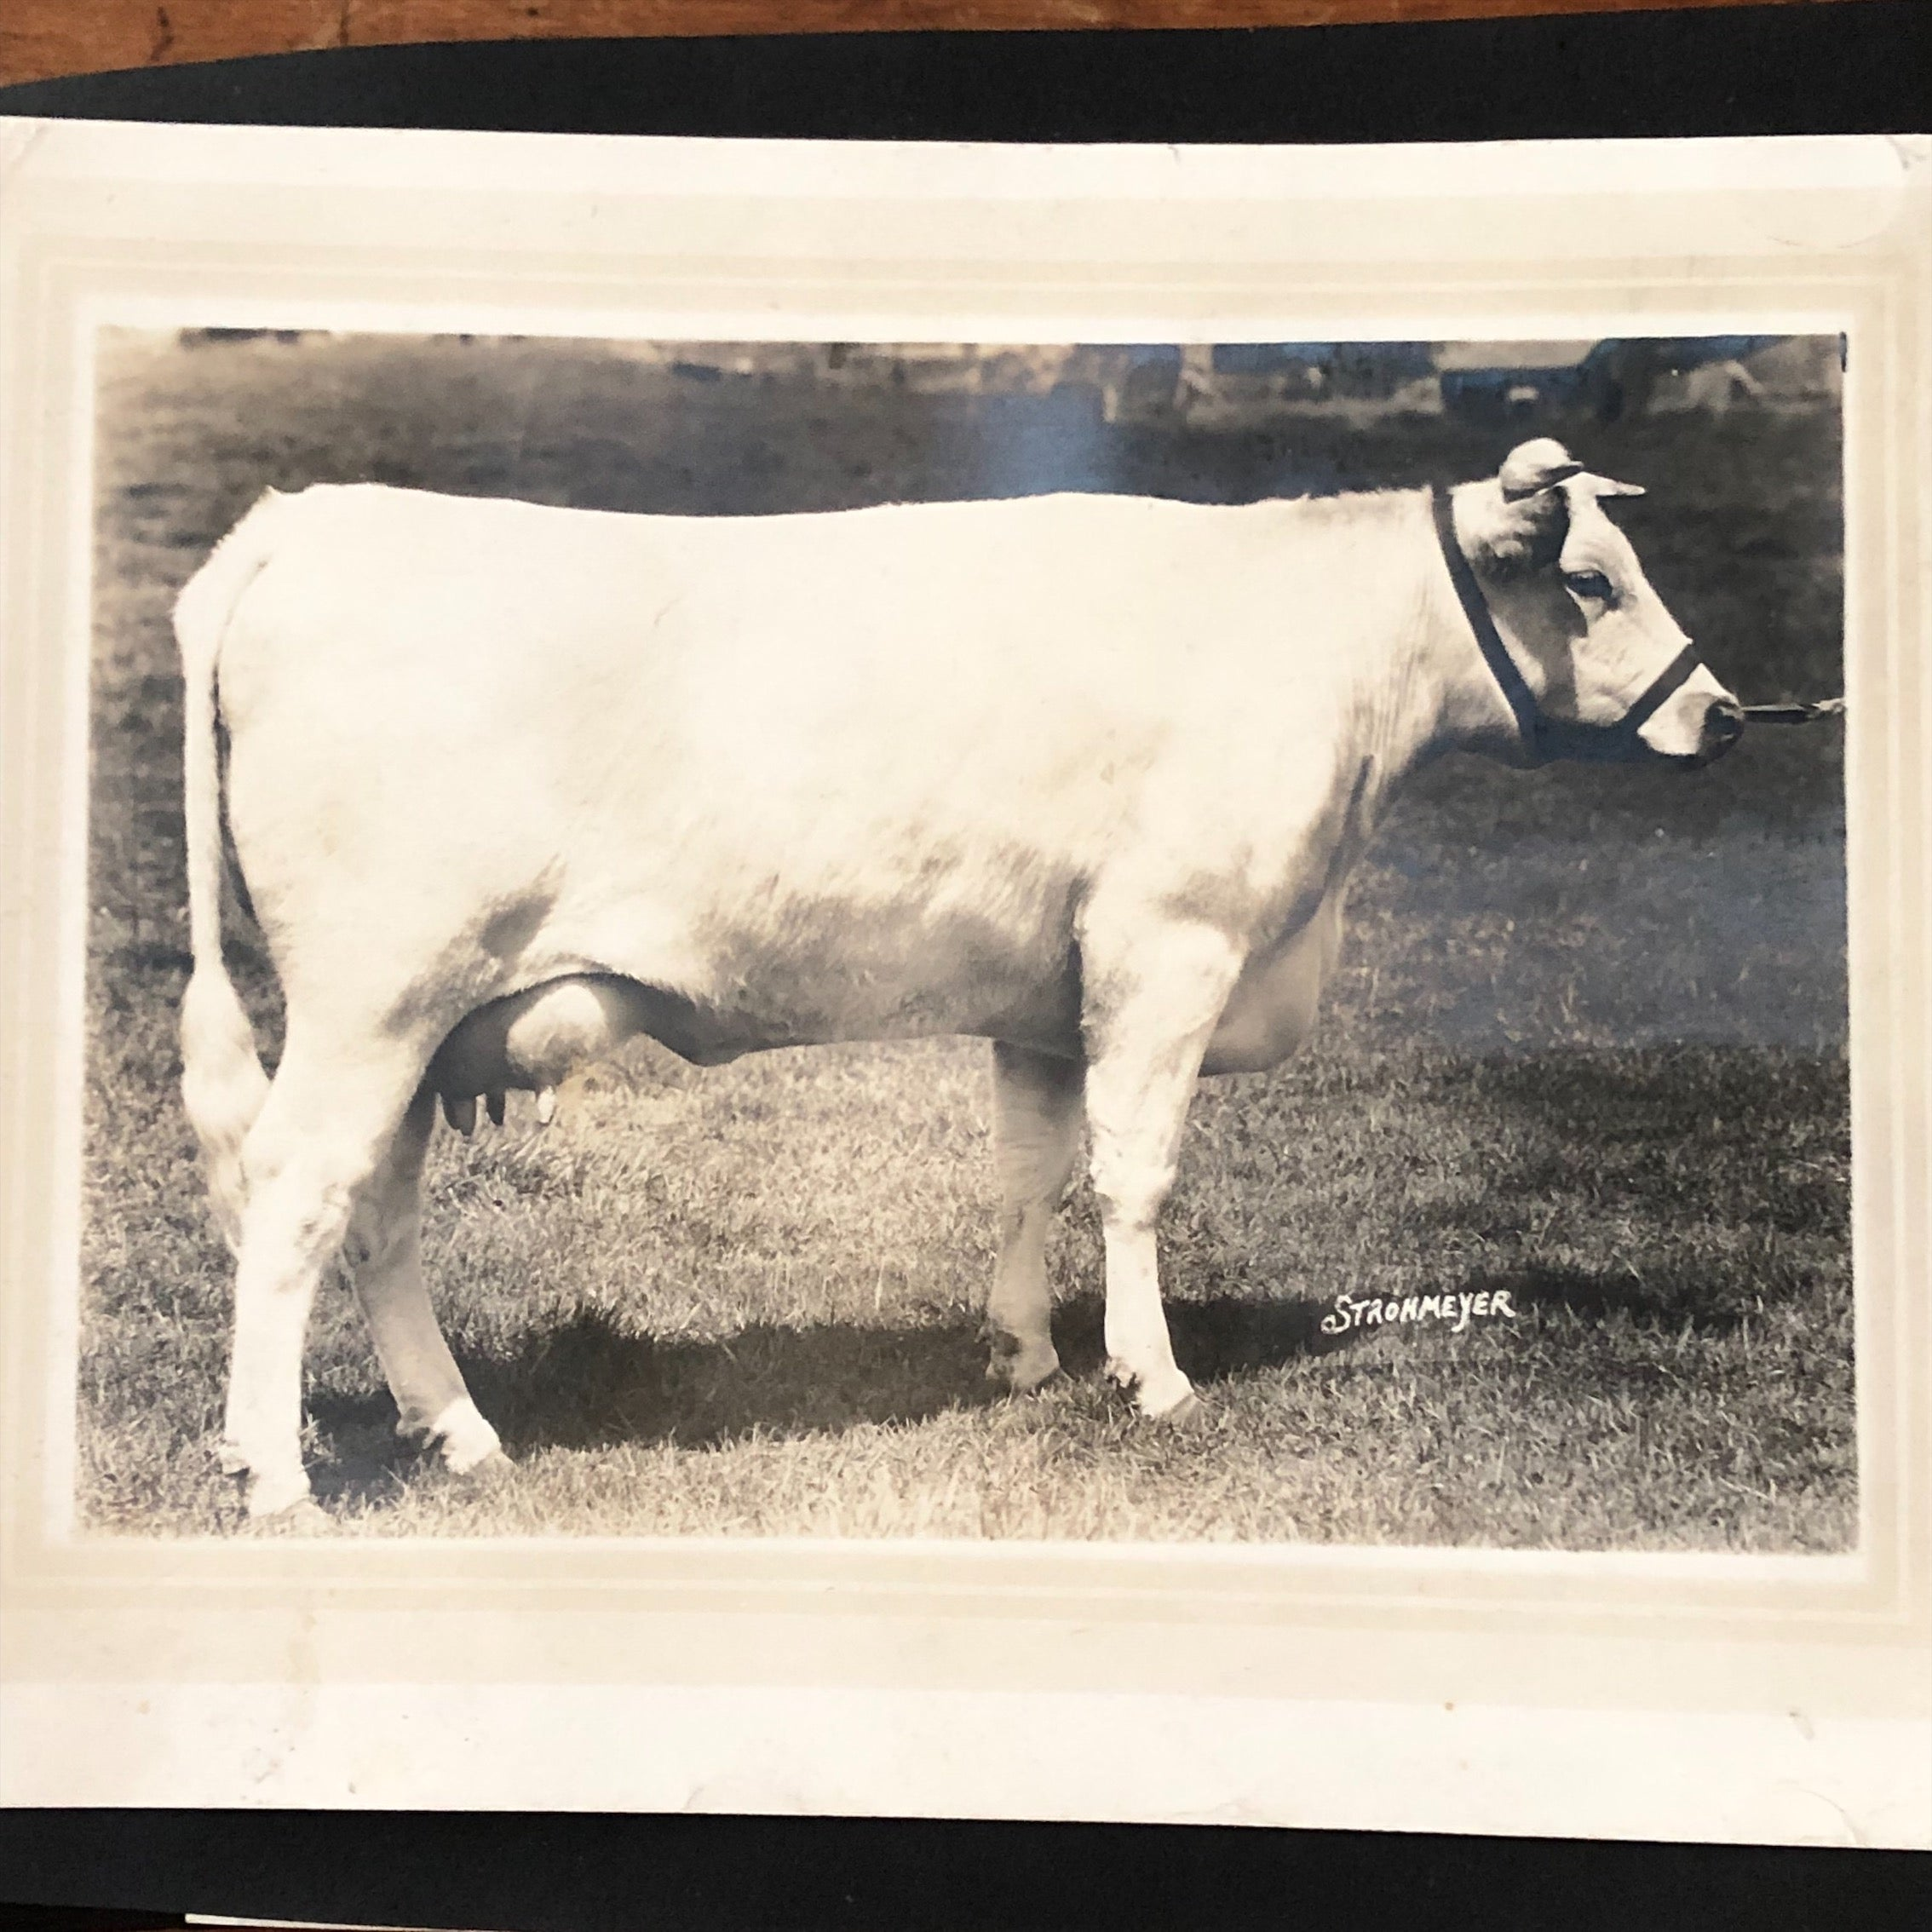 H.A. Strohmeyer Photograph of Cow